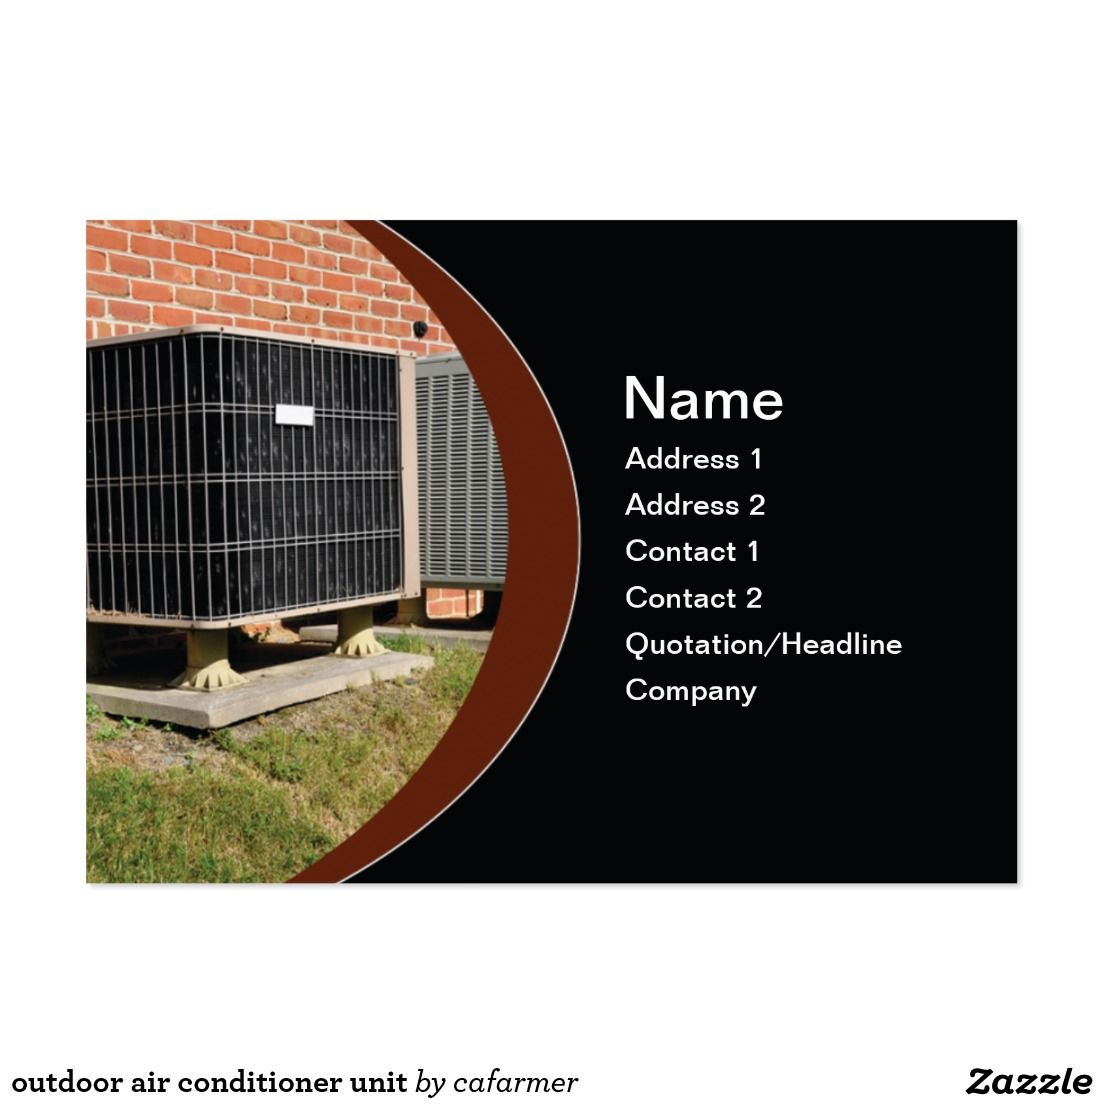 Design Your Own Exterior: Create Your Own Profile Card